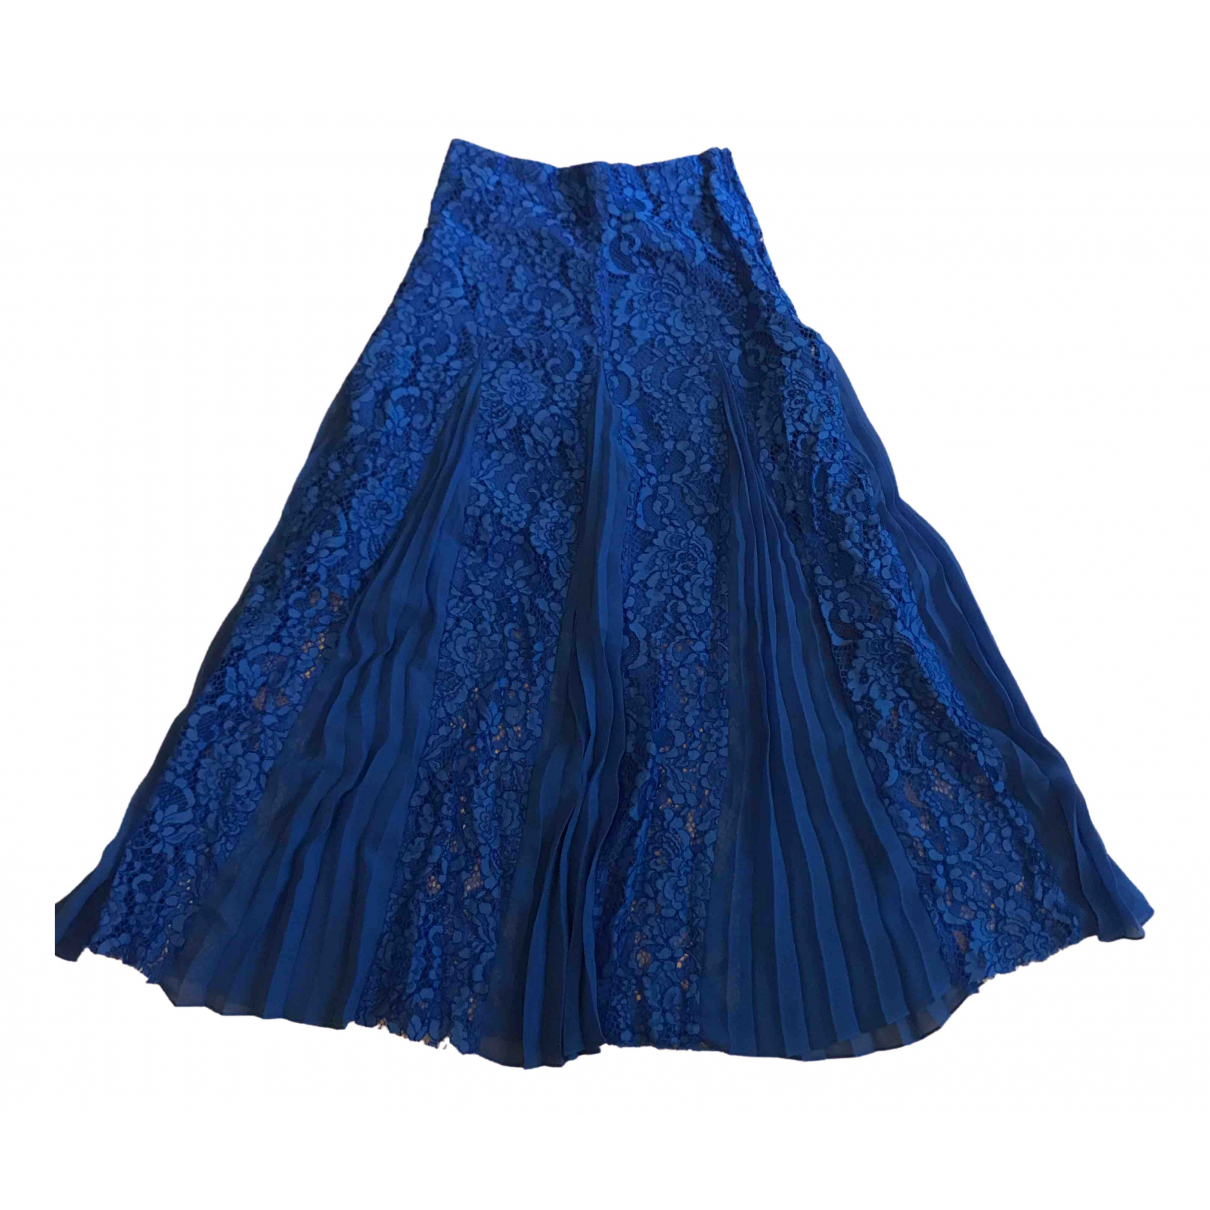 Sandro \N Blue skirt for Women 36 FR